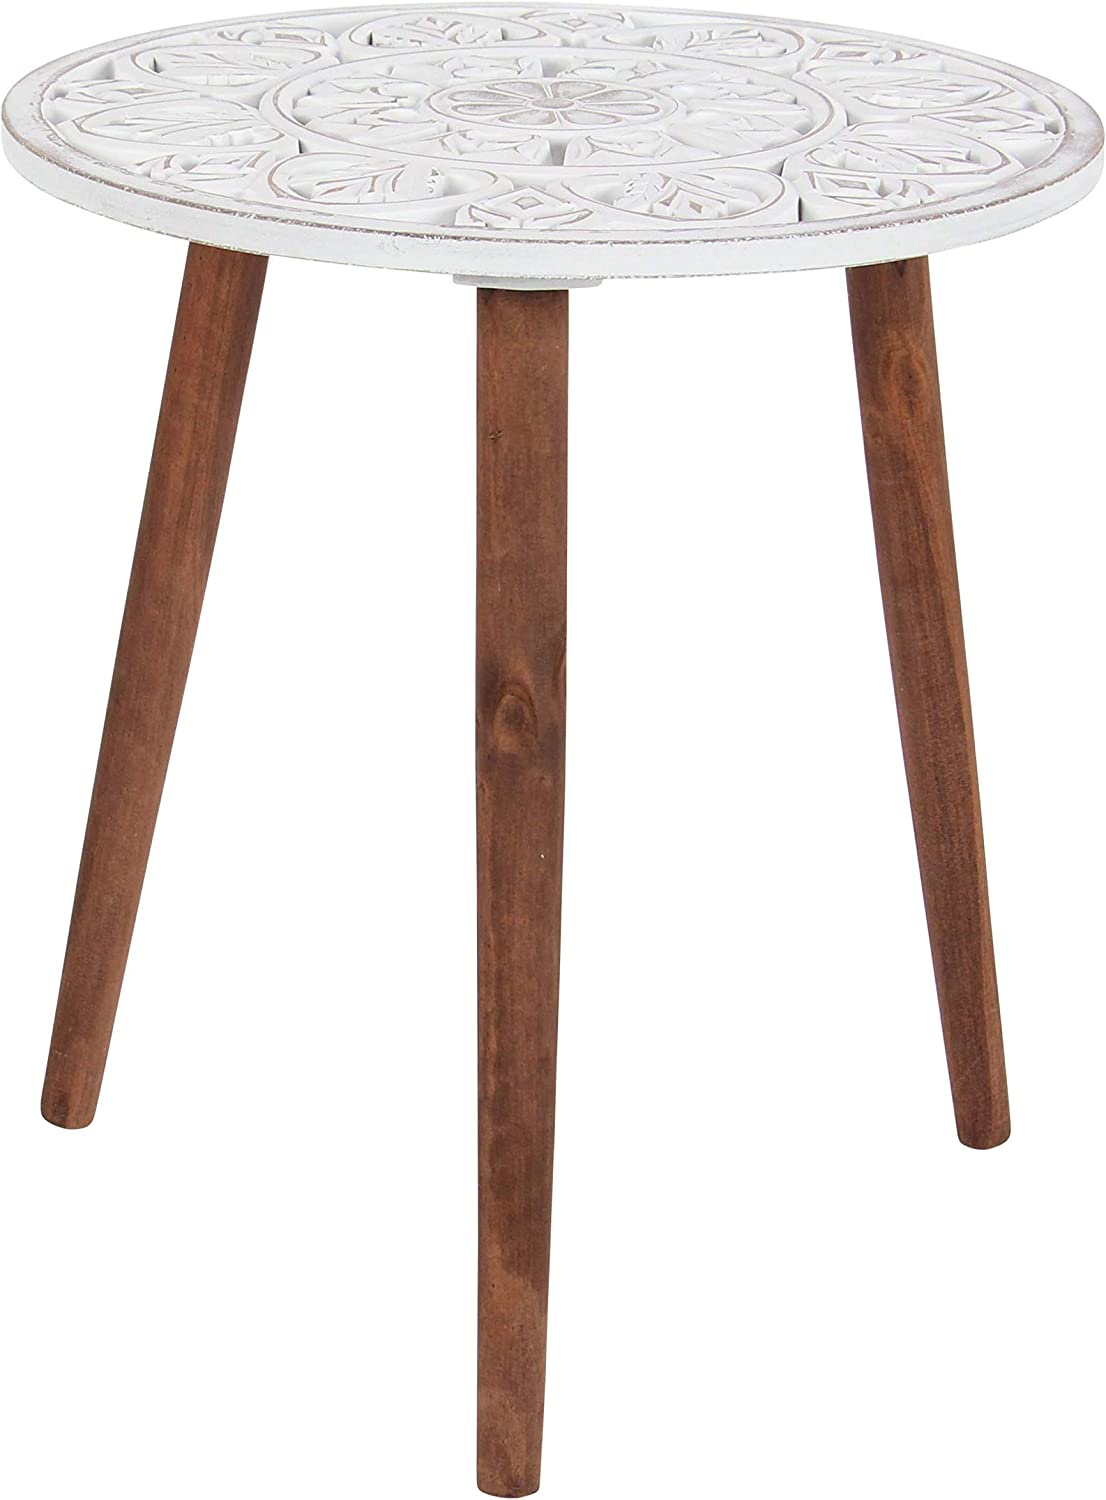 Deco 79 98777 Carved Mandala Design Wooden Accent Table, White Brown